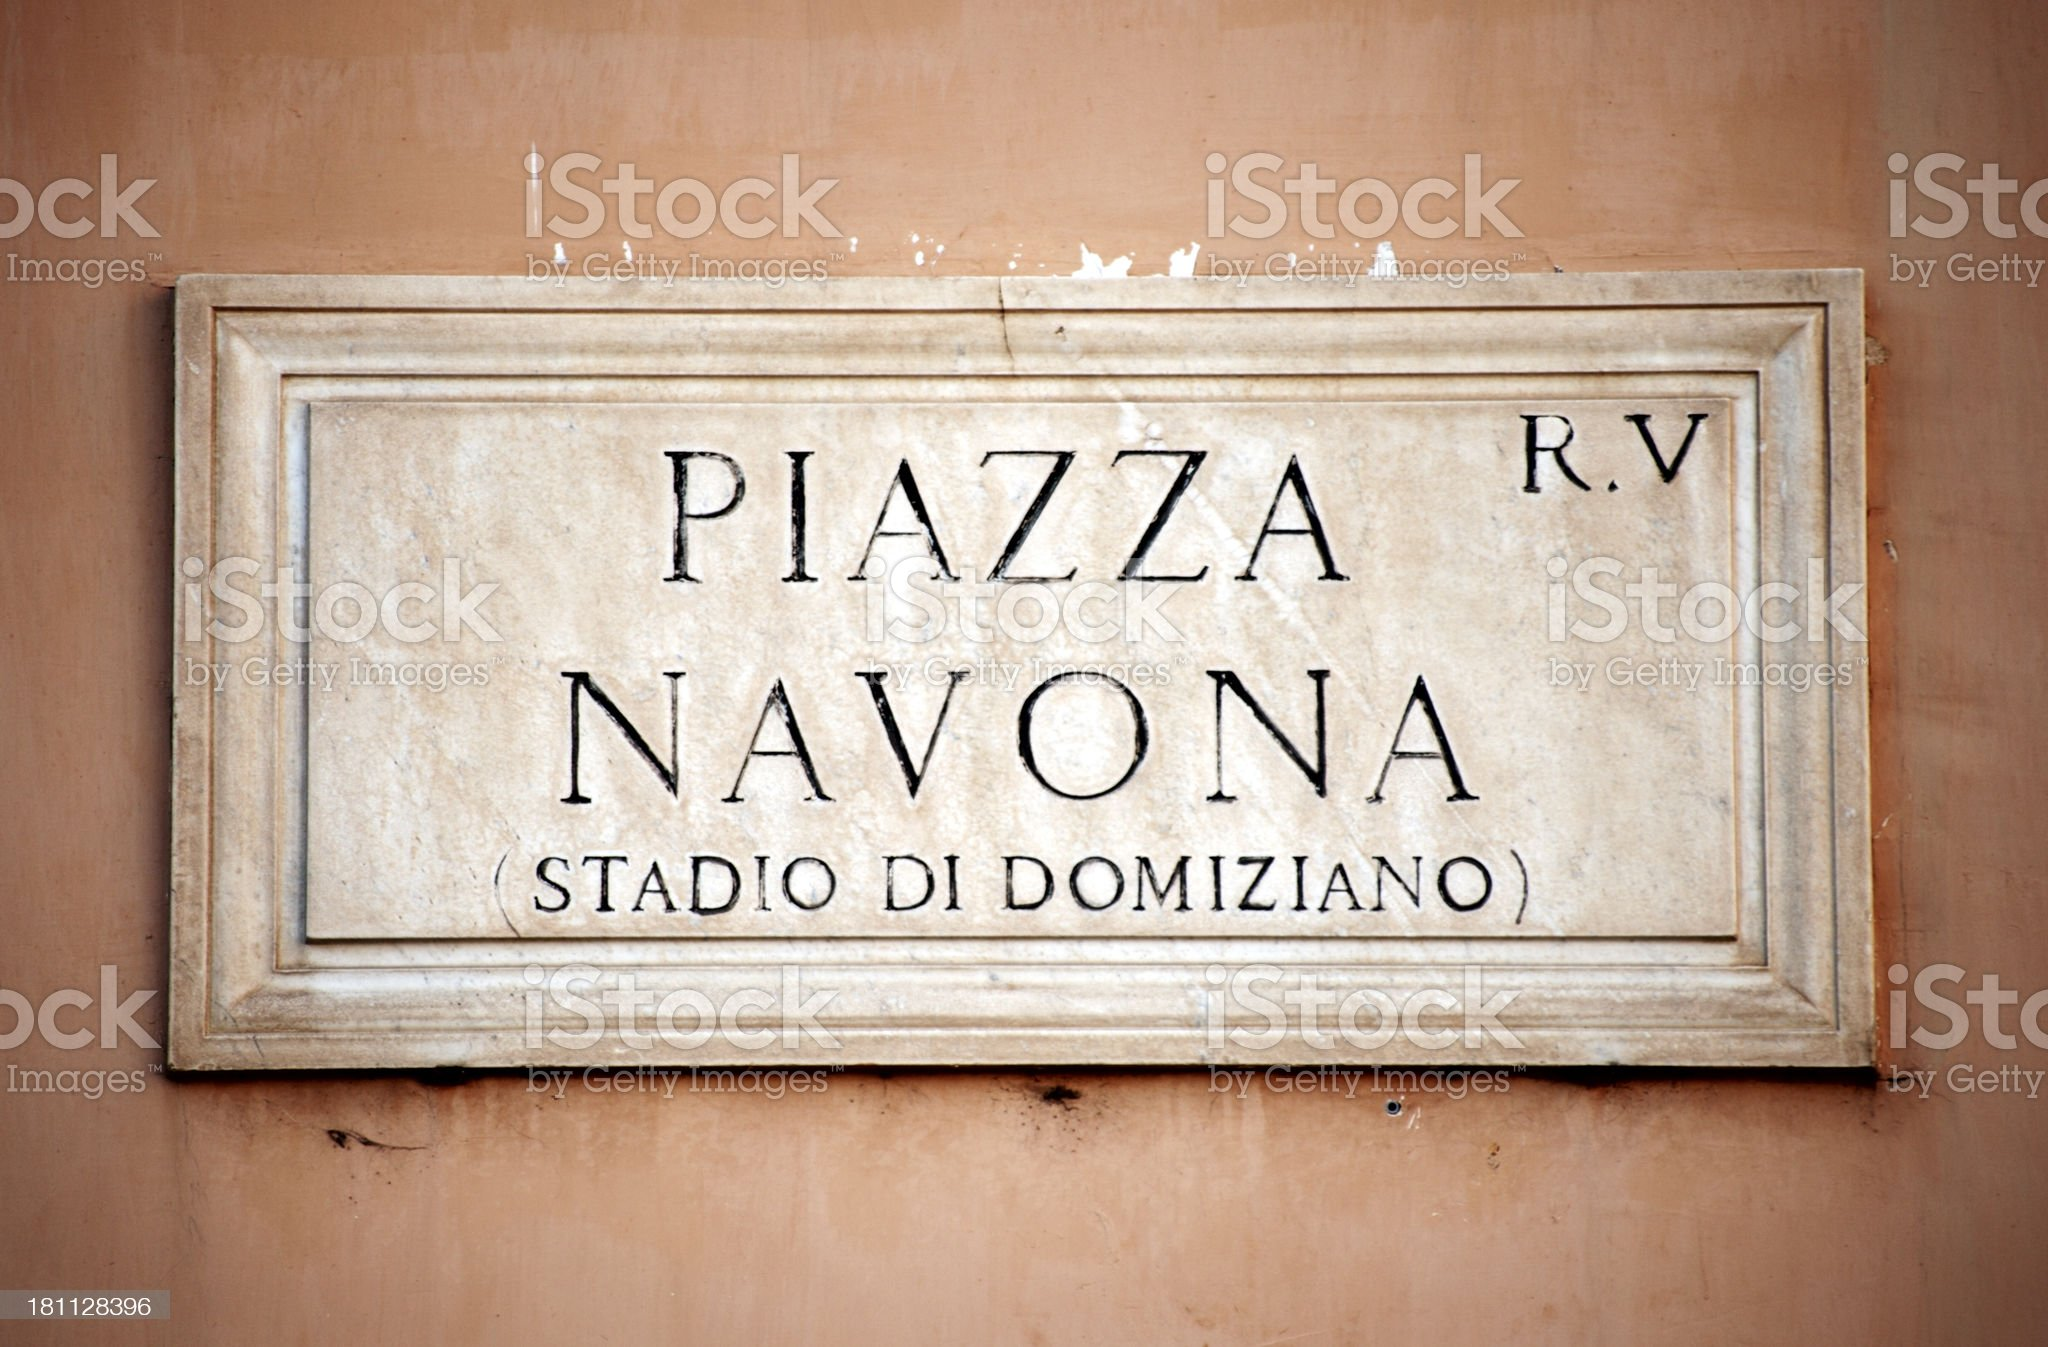 Piazza Navona sign in Rome, Italy royalty-free stock photo